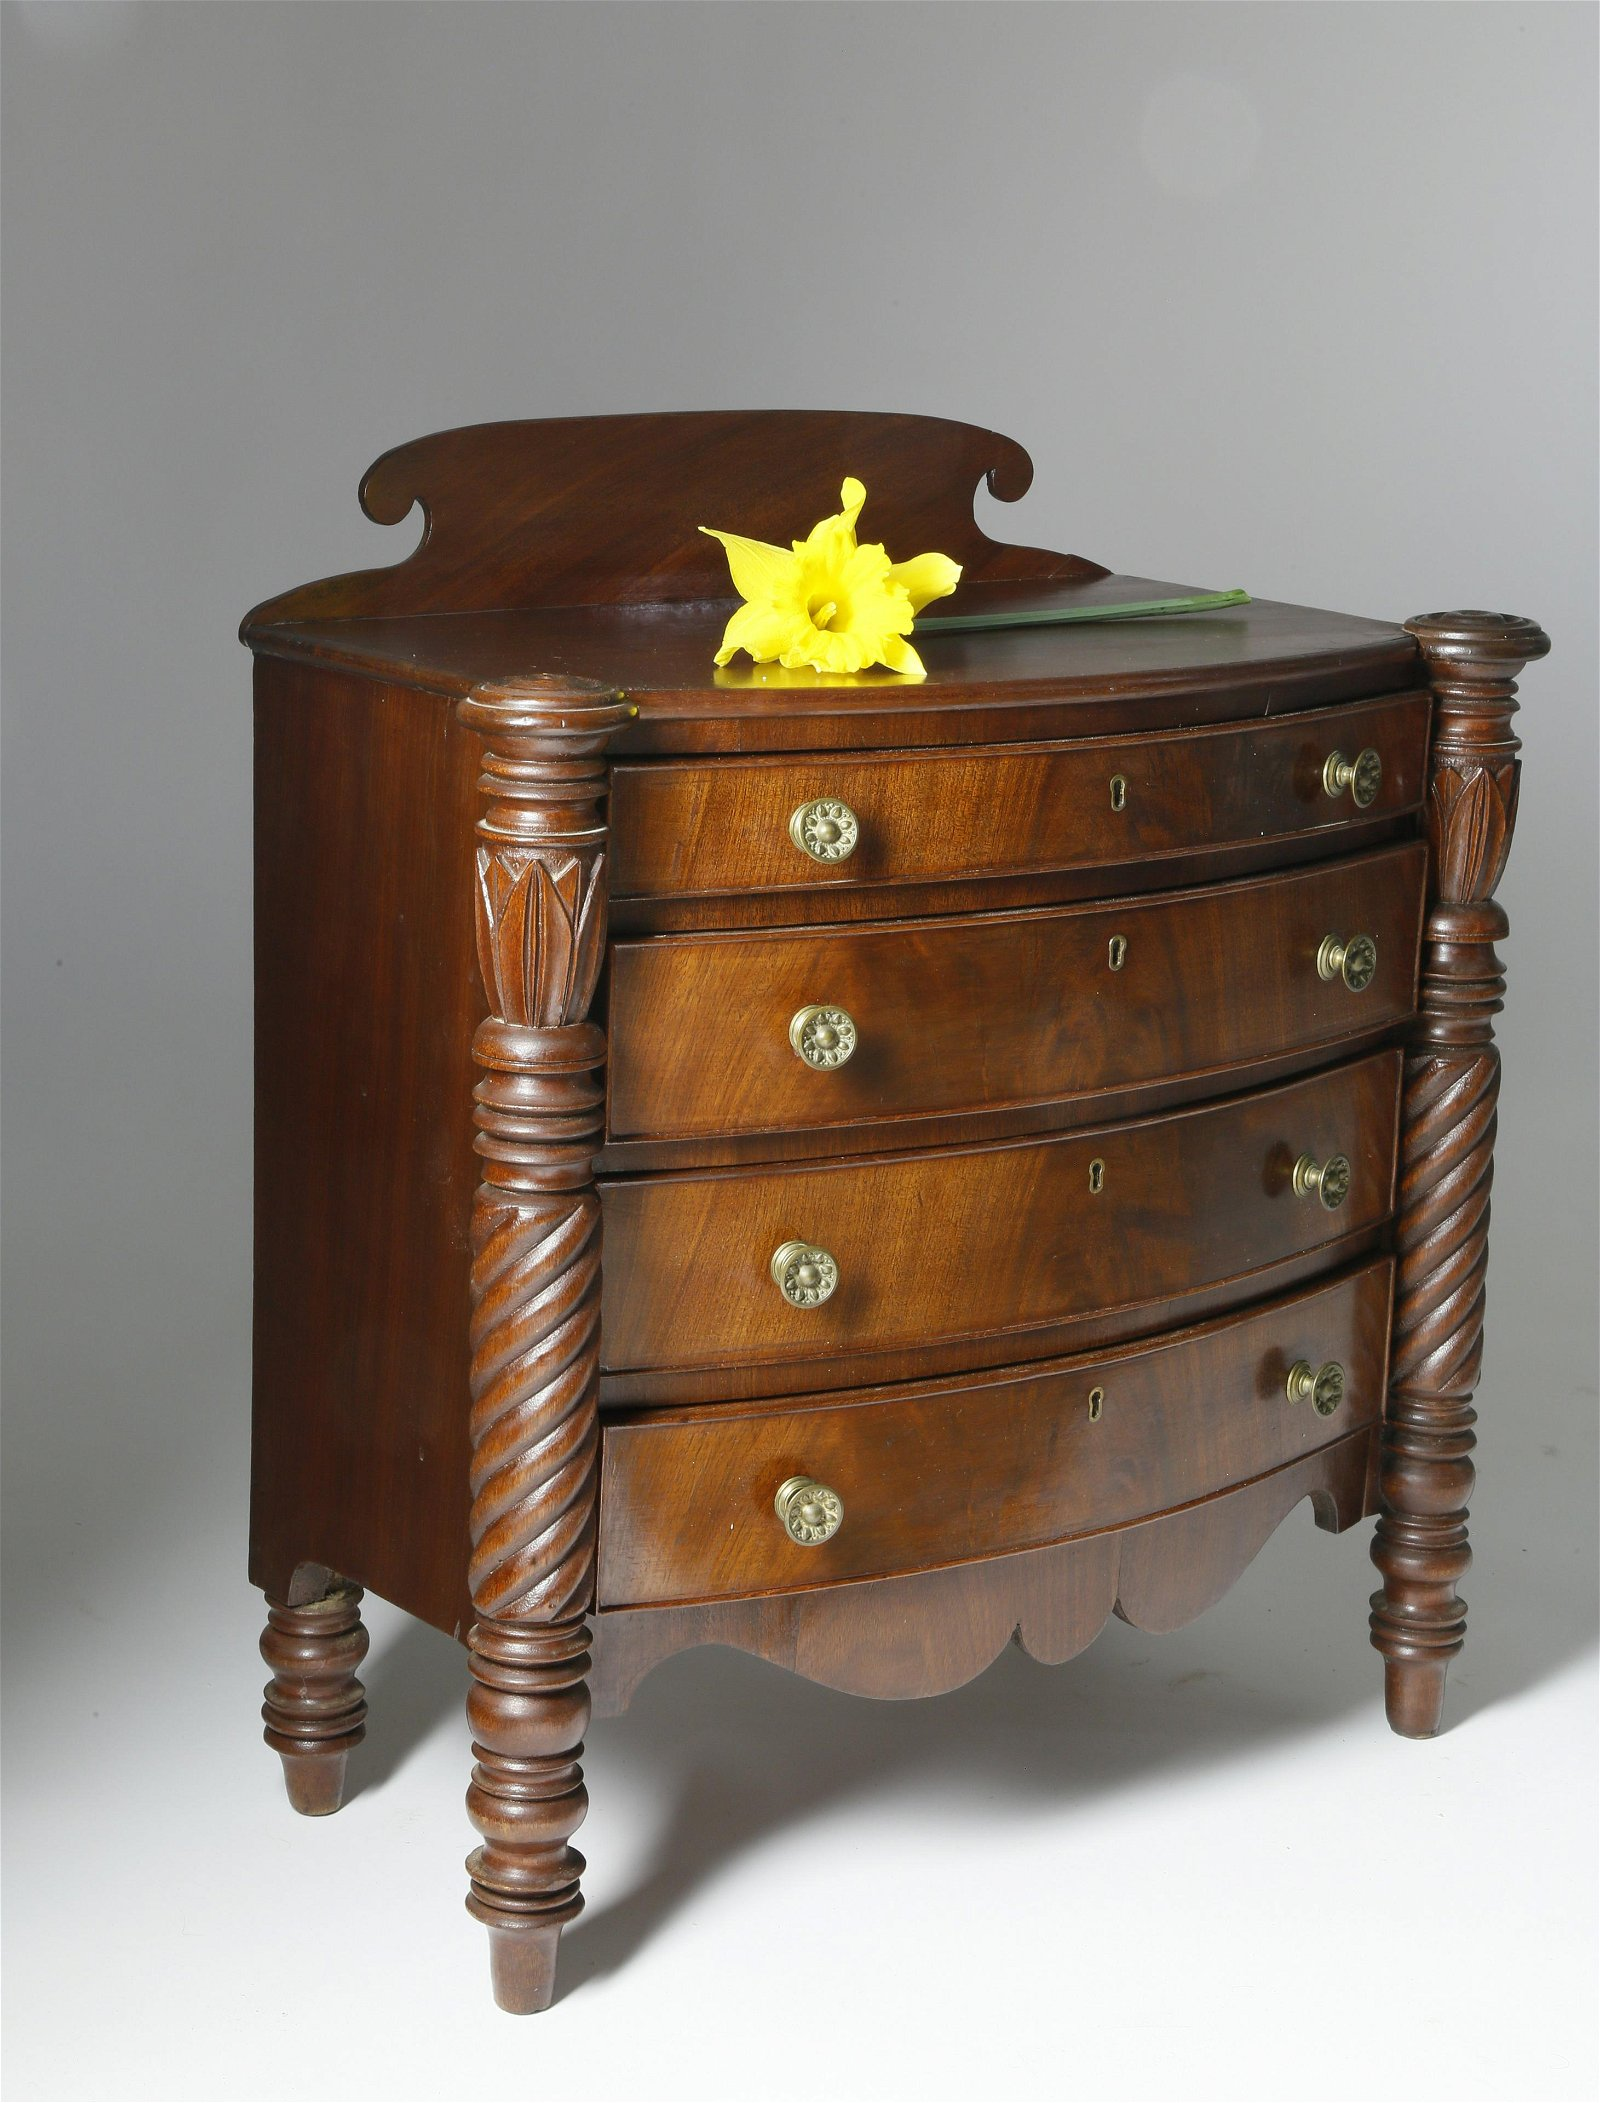 Miniature Mahogany Chest of Drawers, circa 1825